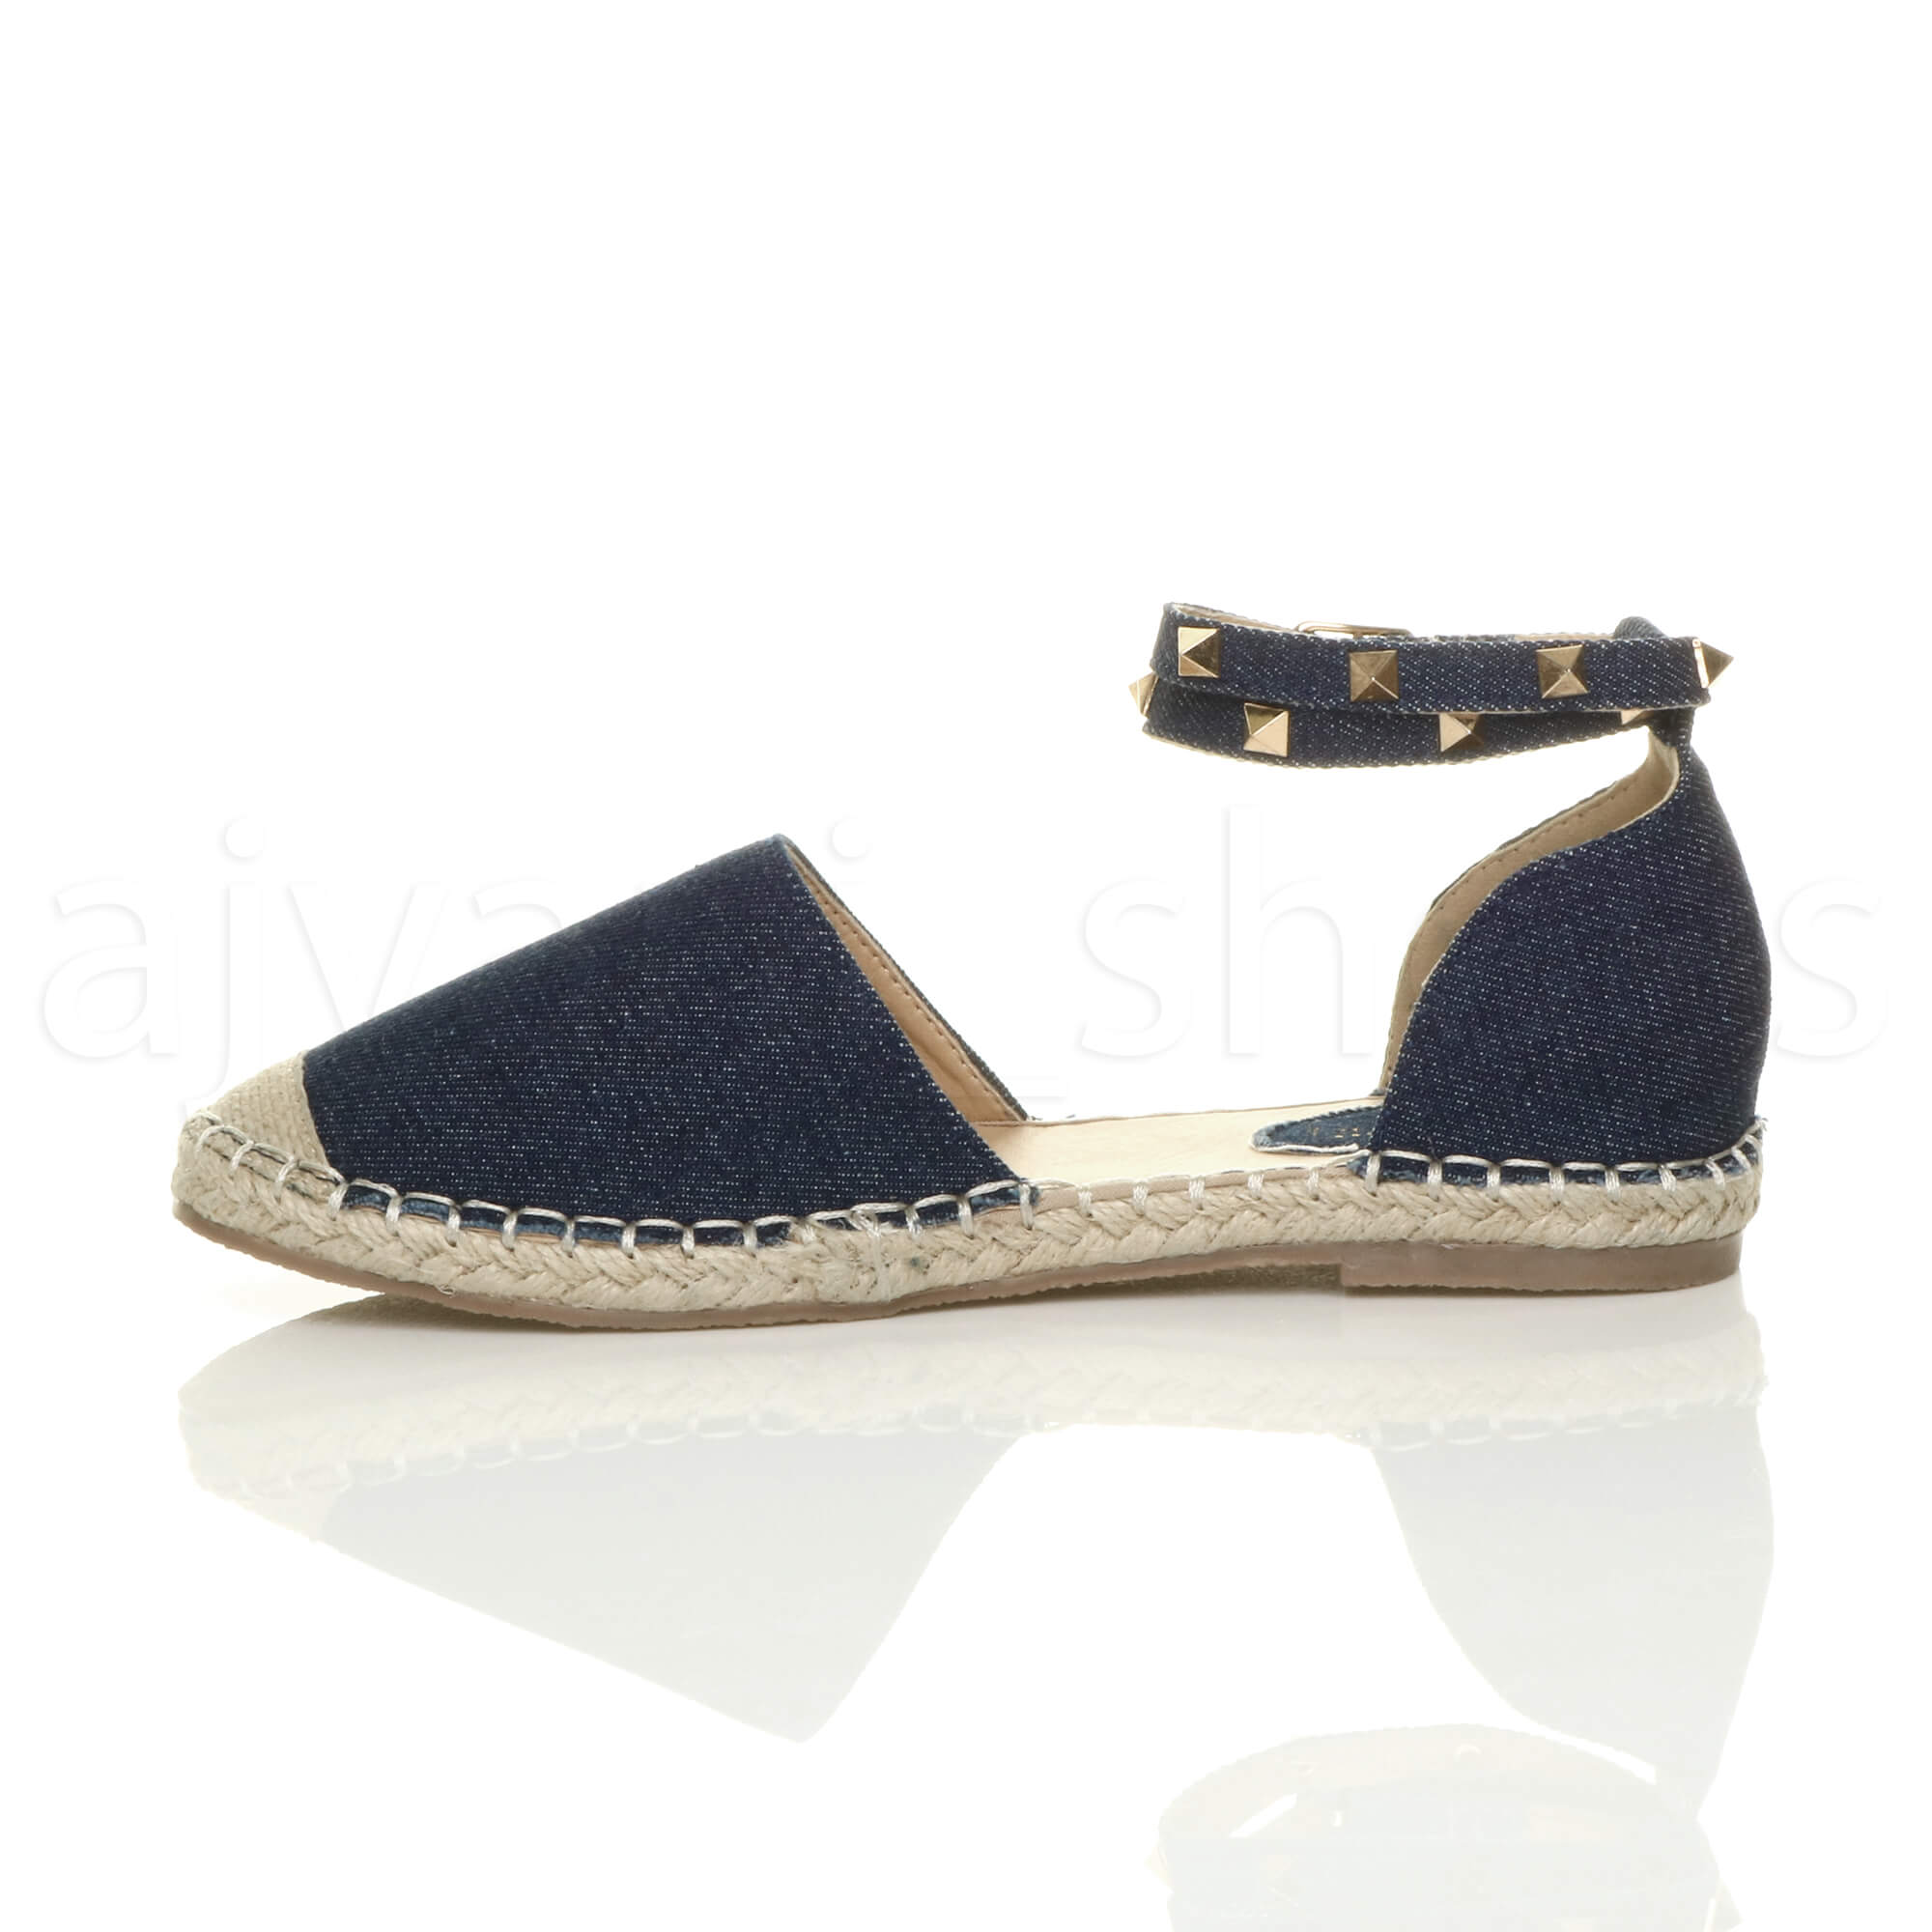 WOMENS-LADIES-FLAT-STUDDED-ANKLE-STRAP-ESPADRILLES-SUMMER-SHOES-SANDALS-SIZE